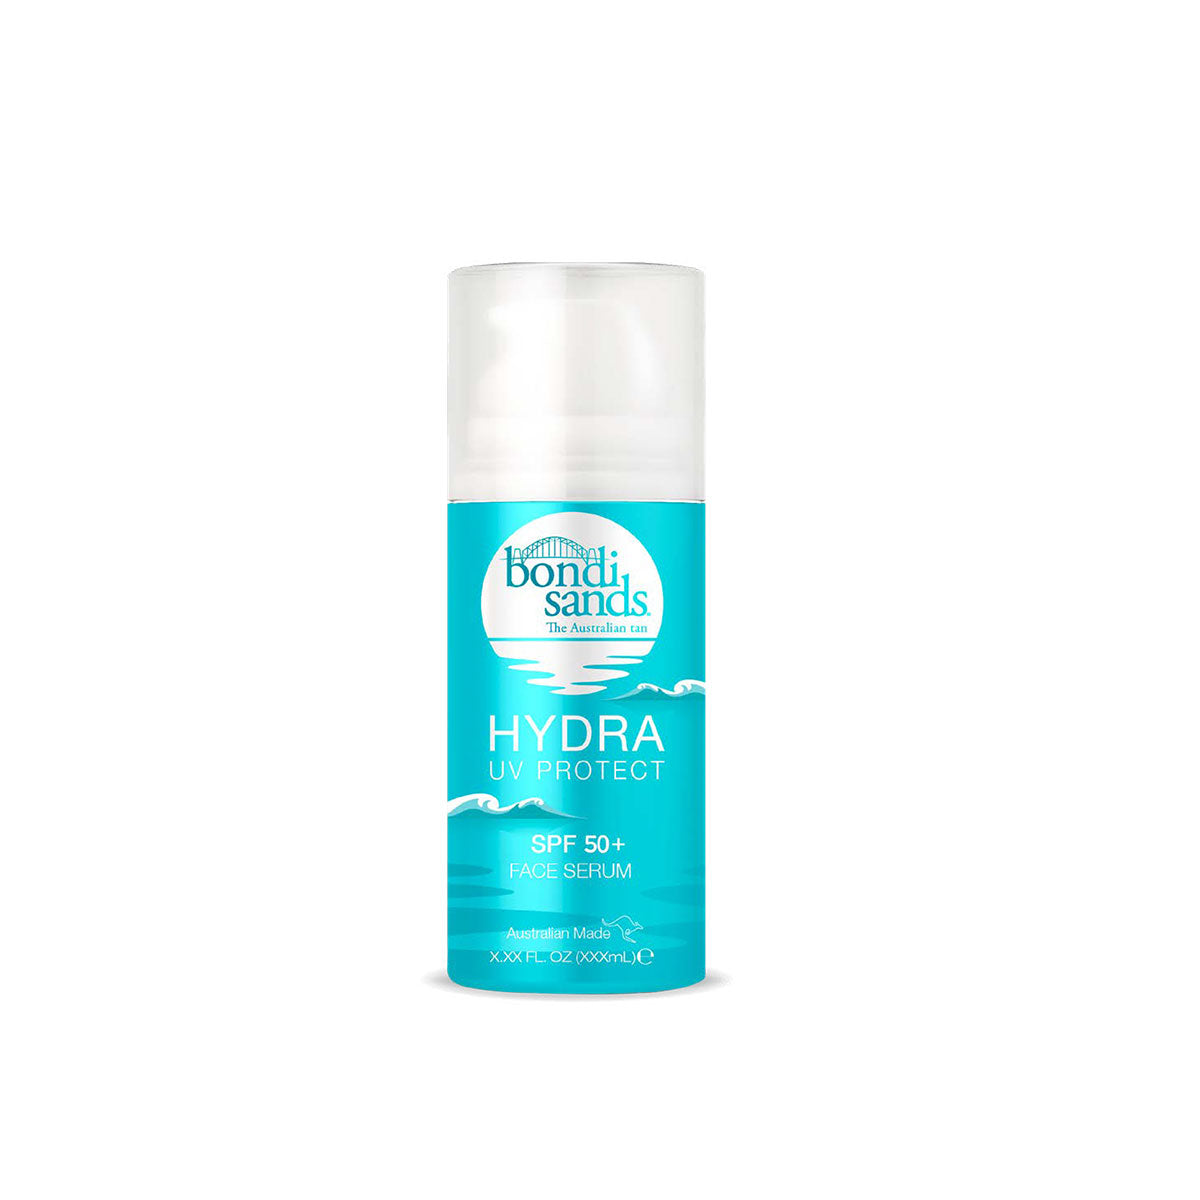 Bondi Sands Hydra UV Protect SPF50+ Body Lotion 150ml